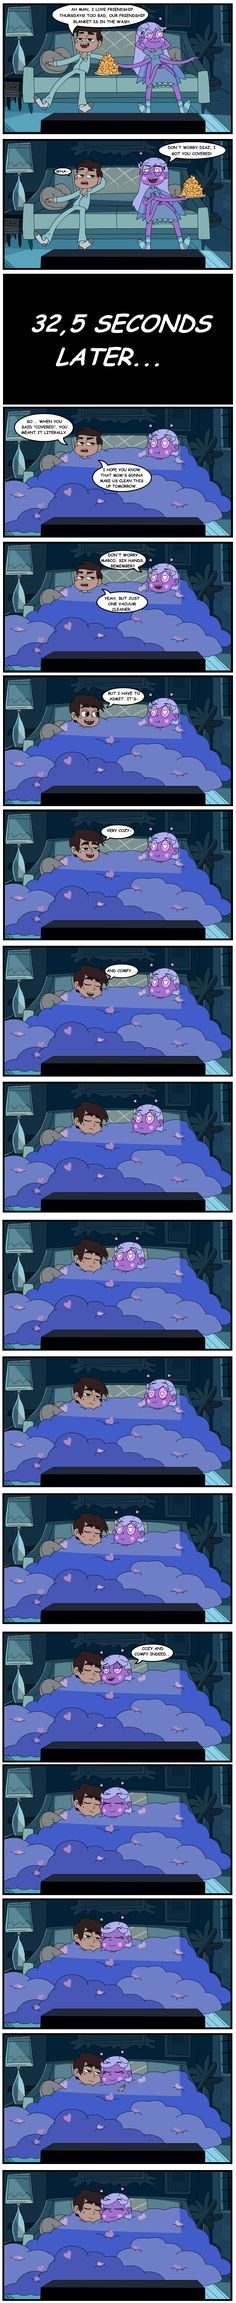 See more 'Star vs. the Forces of Evil' images on Know Your Meme! Starco Comic, Star Y Marco, All Falls Down, Star Wars, Disney Xd, Star Butterfly, Cartoon Shows, Star Vs The Forces Of Evil, Force Of Evil